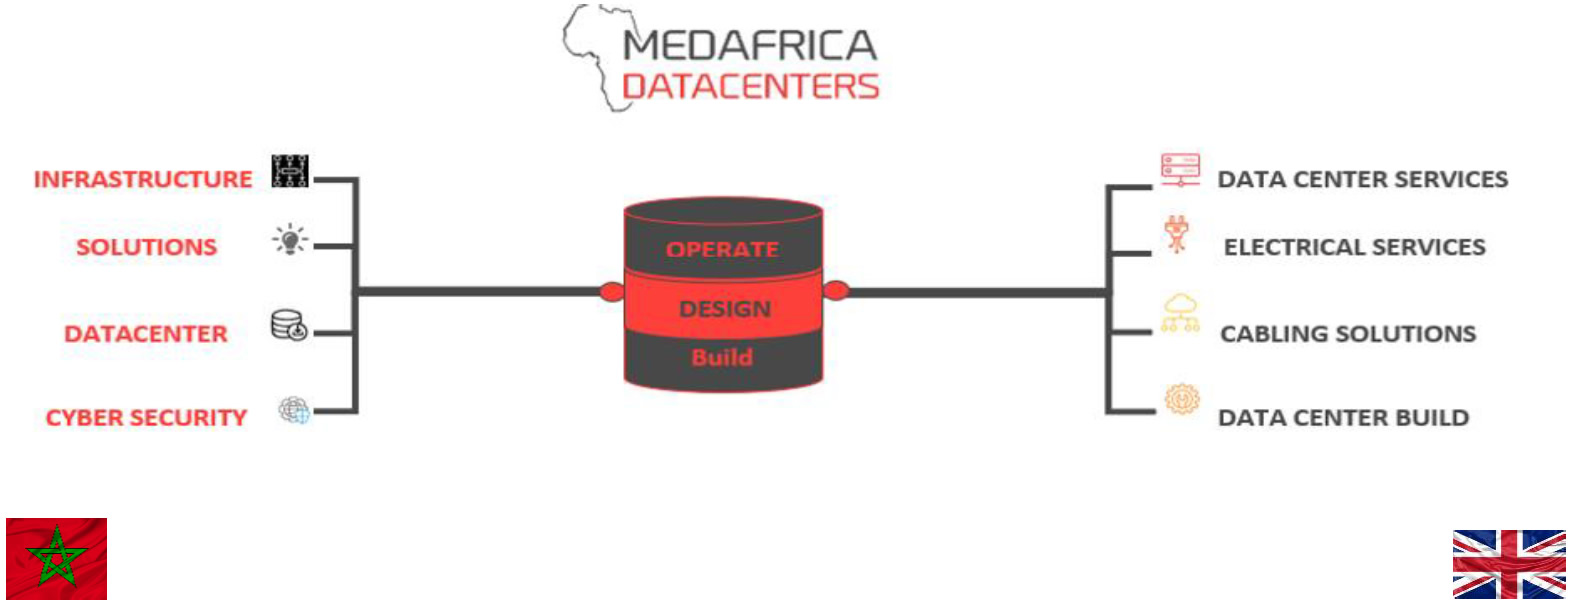 Medafrica Datacenters Branded Partner Mena Innovation 2018 Burglar Alarm System Circuit Diagram Refer Zircom Group United Kingdom Reference Leading In The Construction And Operation Of Data Centers Medasys Moroccan Field